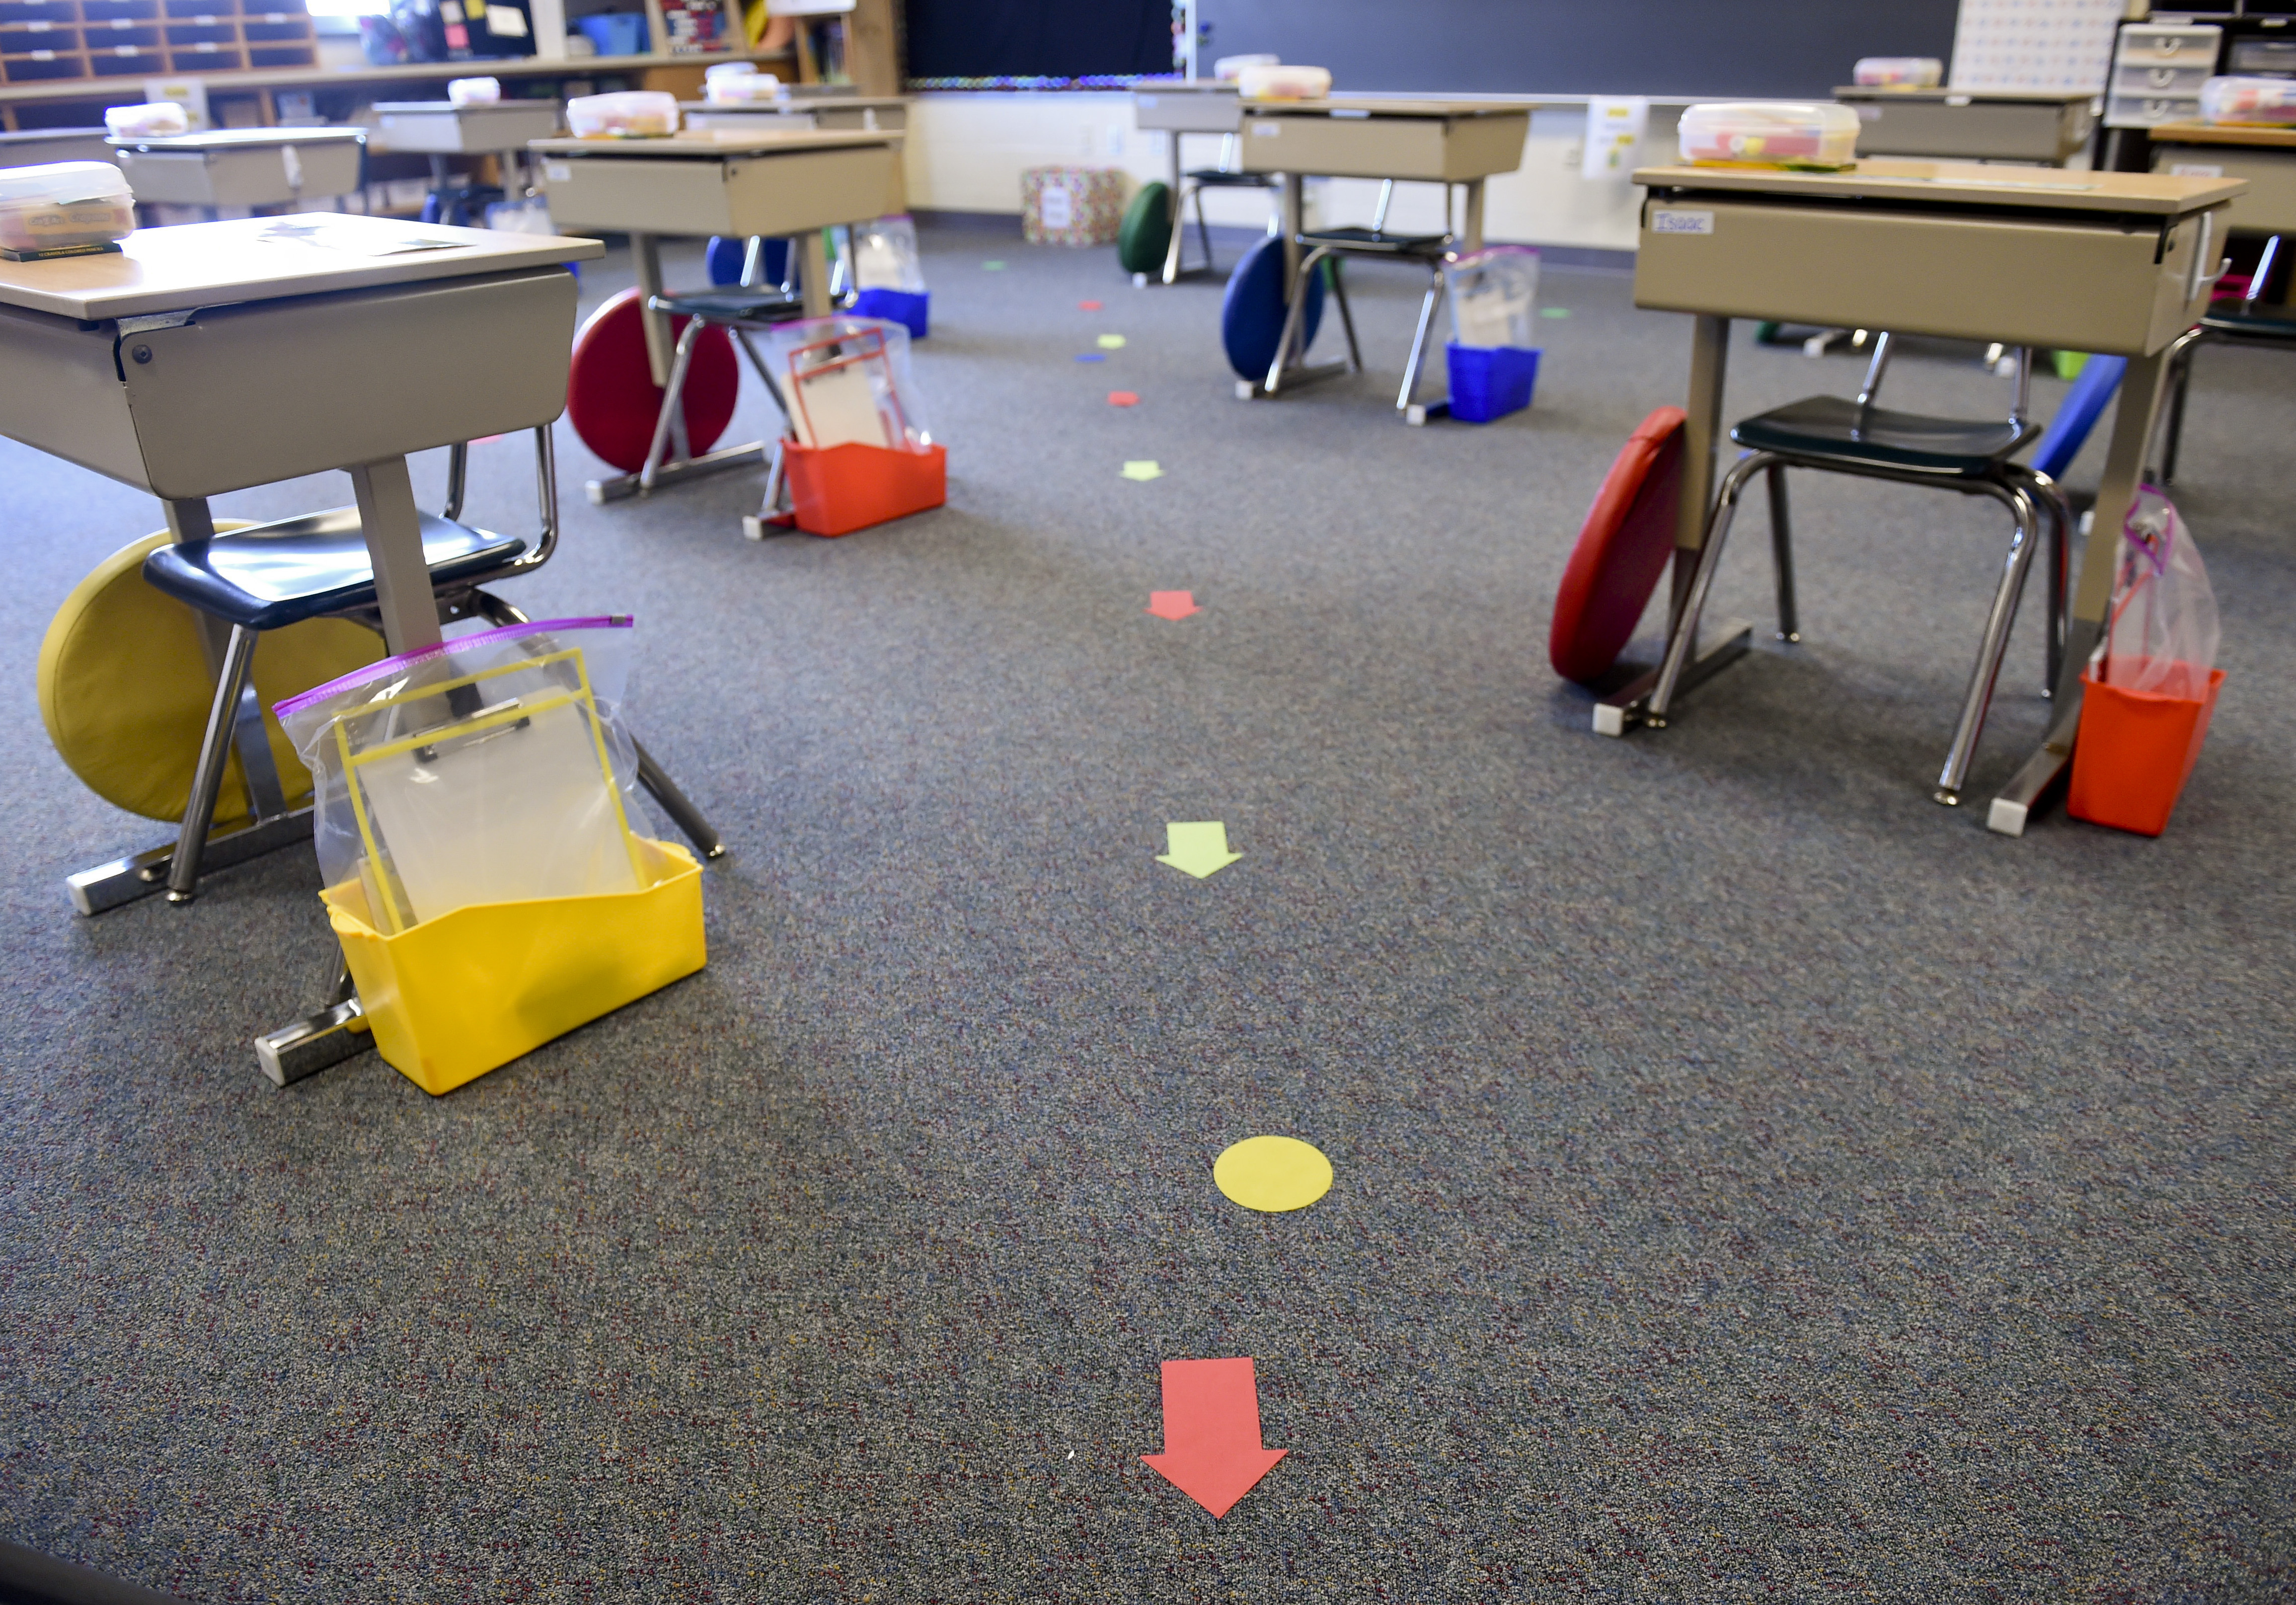 Small desks spaced 6 feet apart in a classroom, with colorful arrow stickers on the floor.